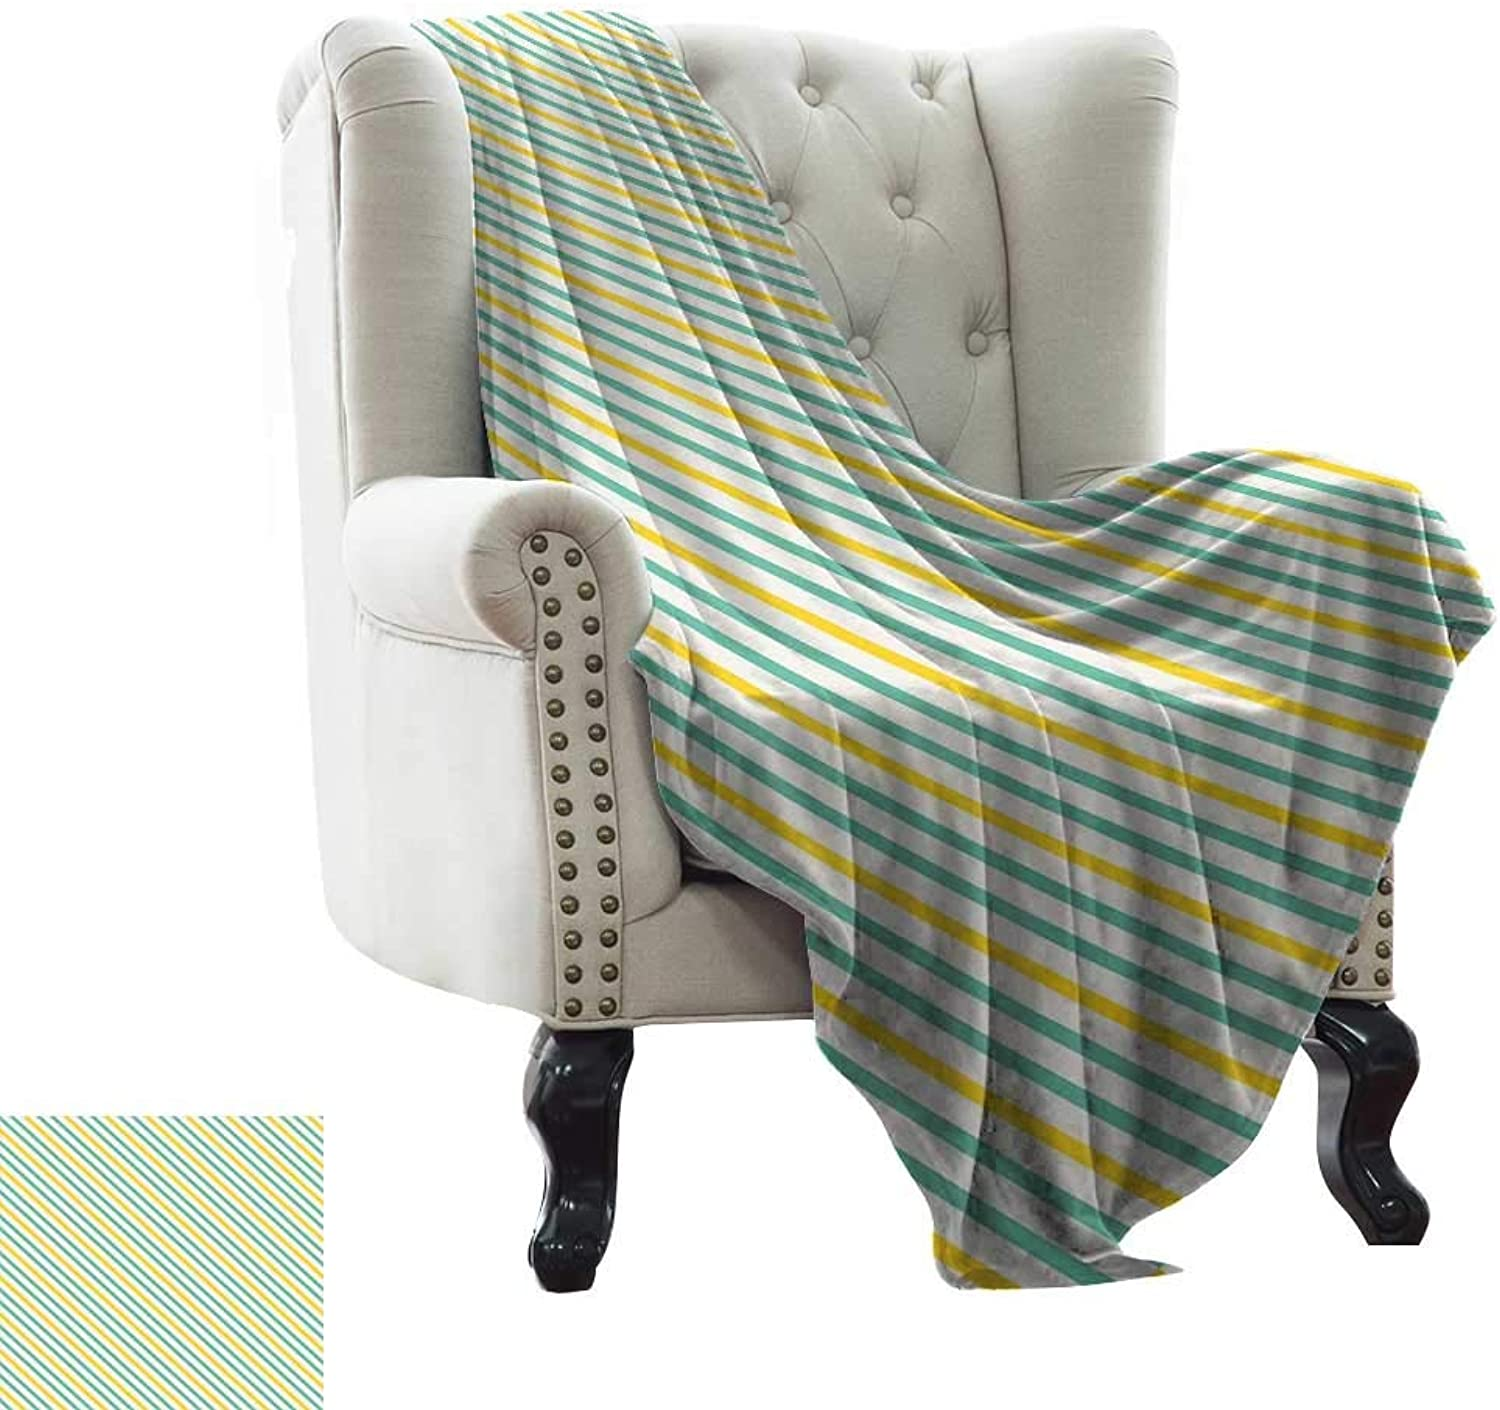 LsWOW Women's Blanket Geometric,Striped Pattern with Tropical Tones Diagonal Stripes Design Abstract,Seafoam Yellow White Soft, Fuzzy, Cozy, Lightweight Blankets 70 x90